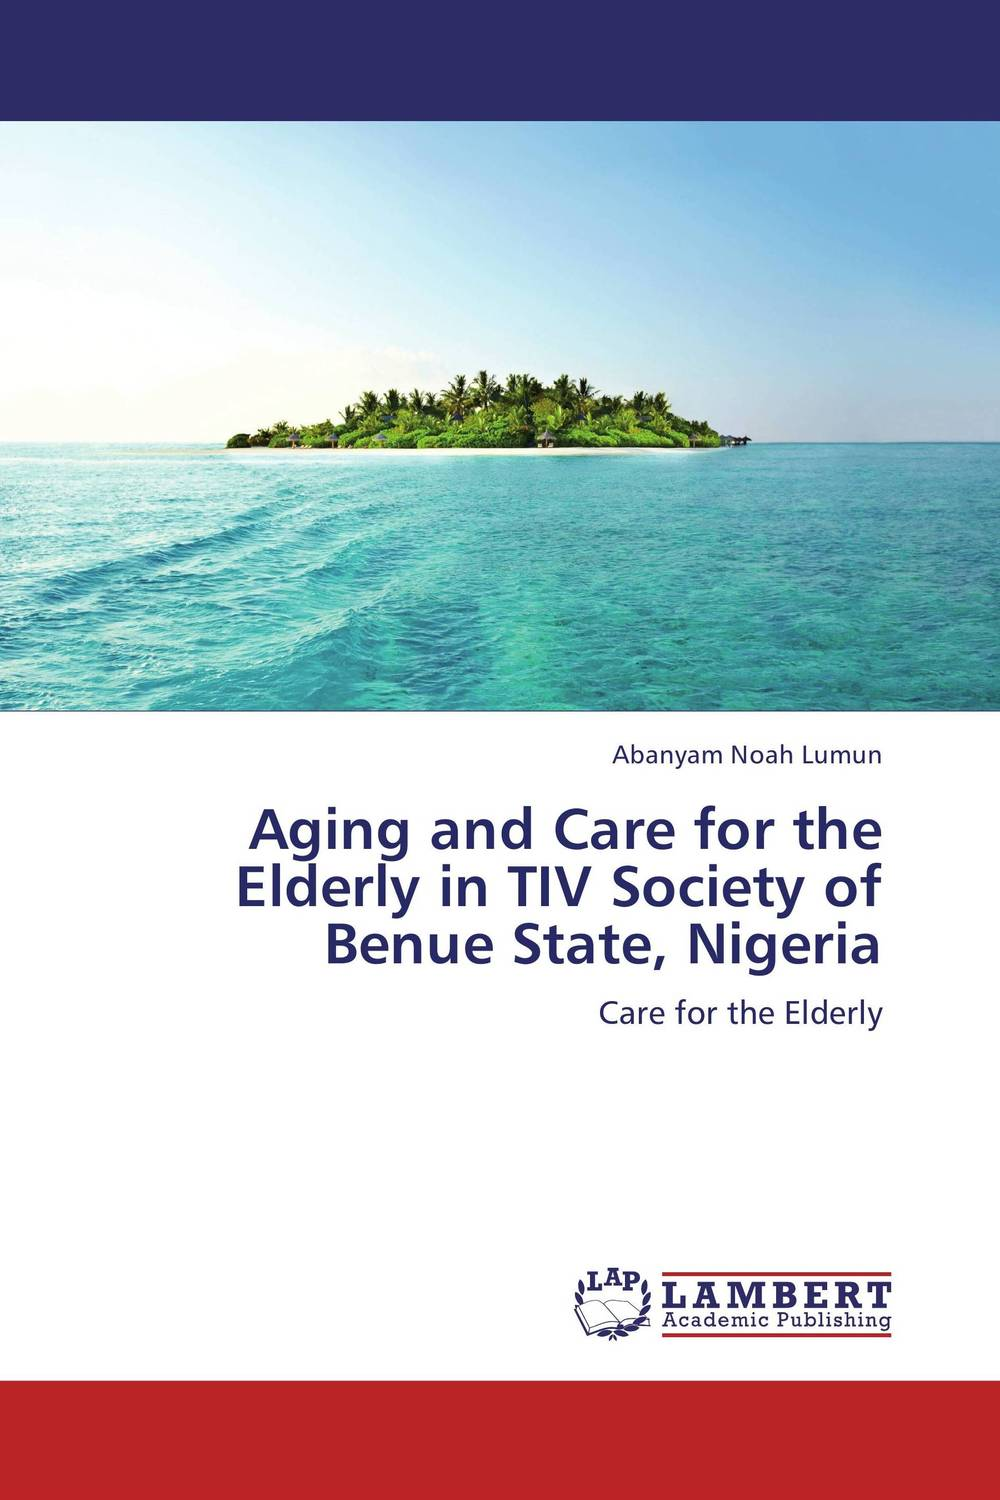 Aging and Care for the Elderly in TIV Society of Benue State, Nigeria костюм для танца живота society for the promotion of natural hall yc1015 ad